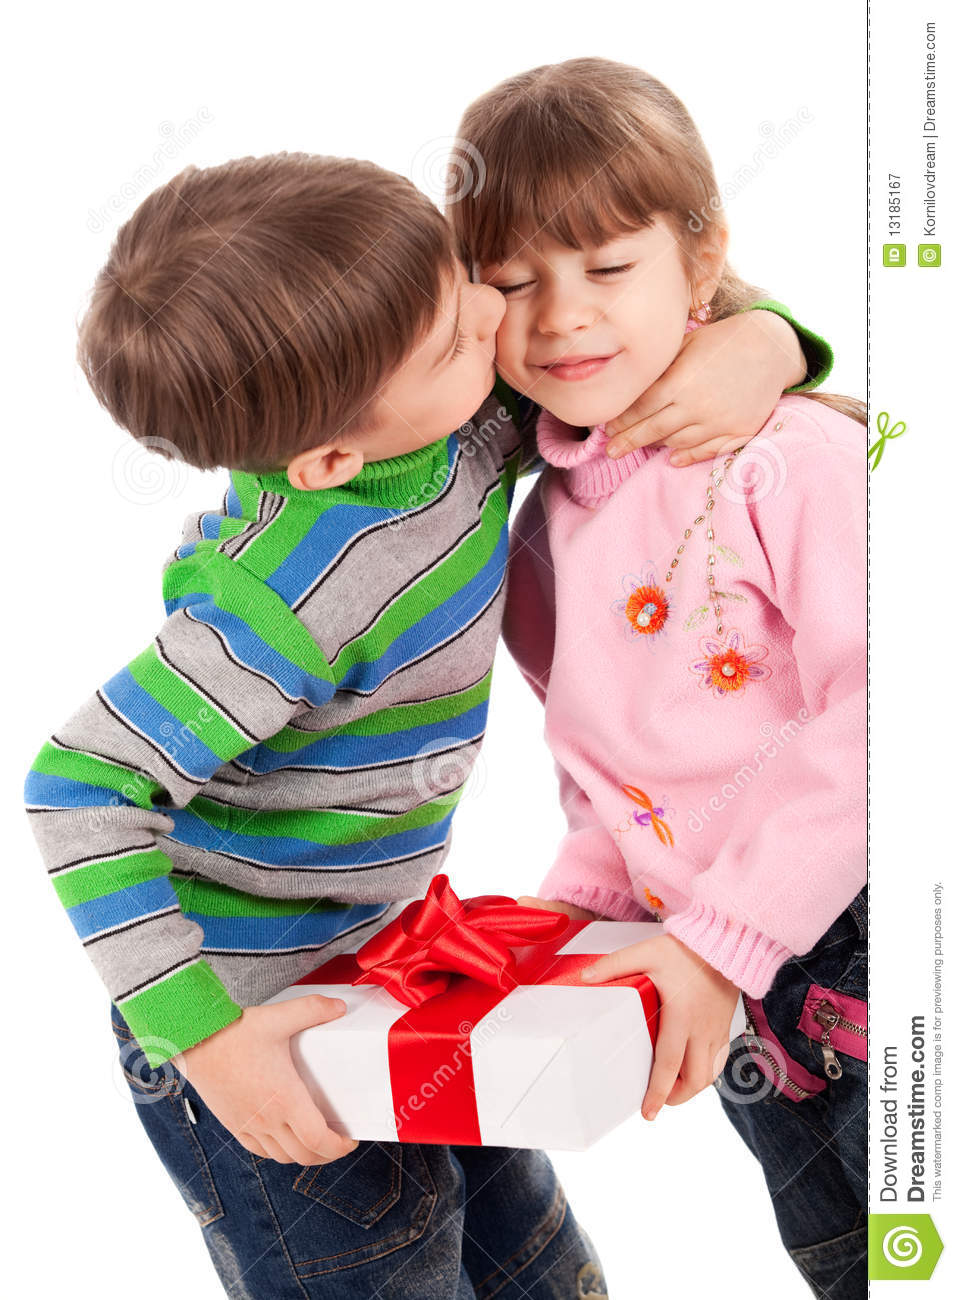 Boy kissing a girl holding gift box stock image image of gift boy kissing a girl holding gift box altavistaventures Images